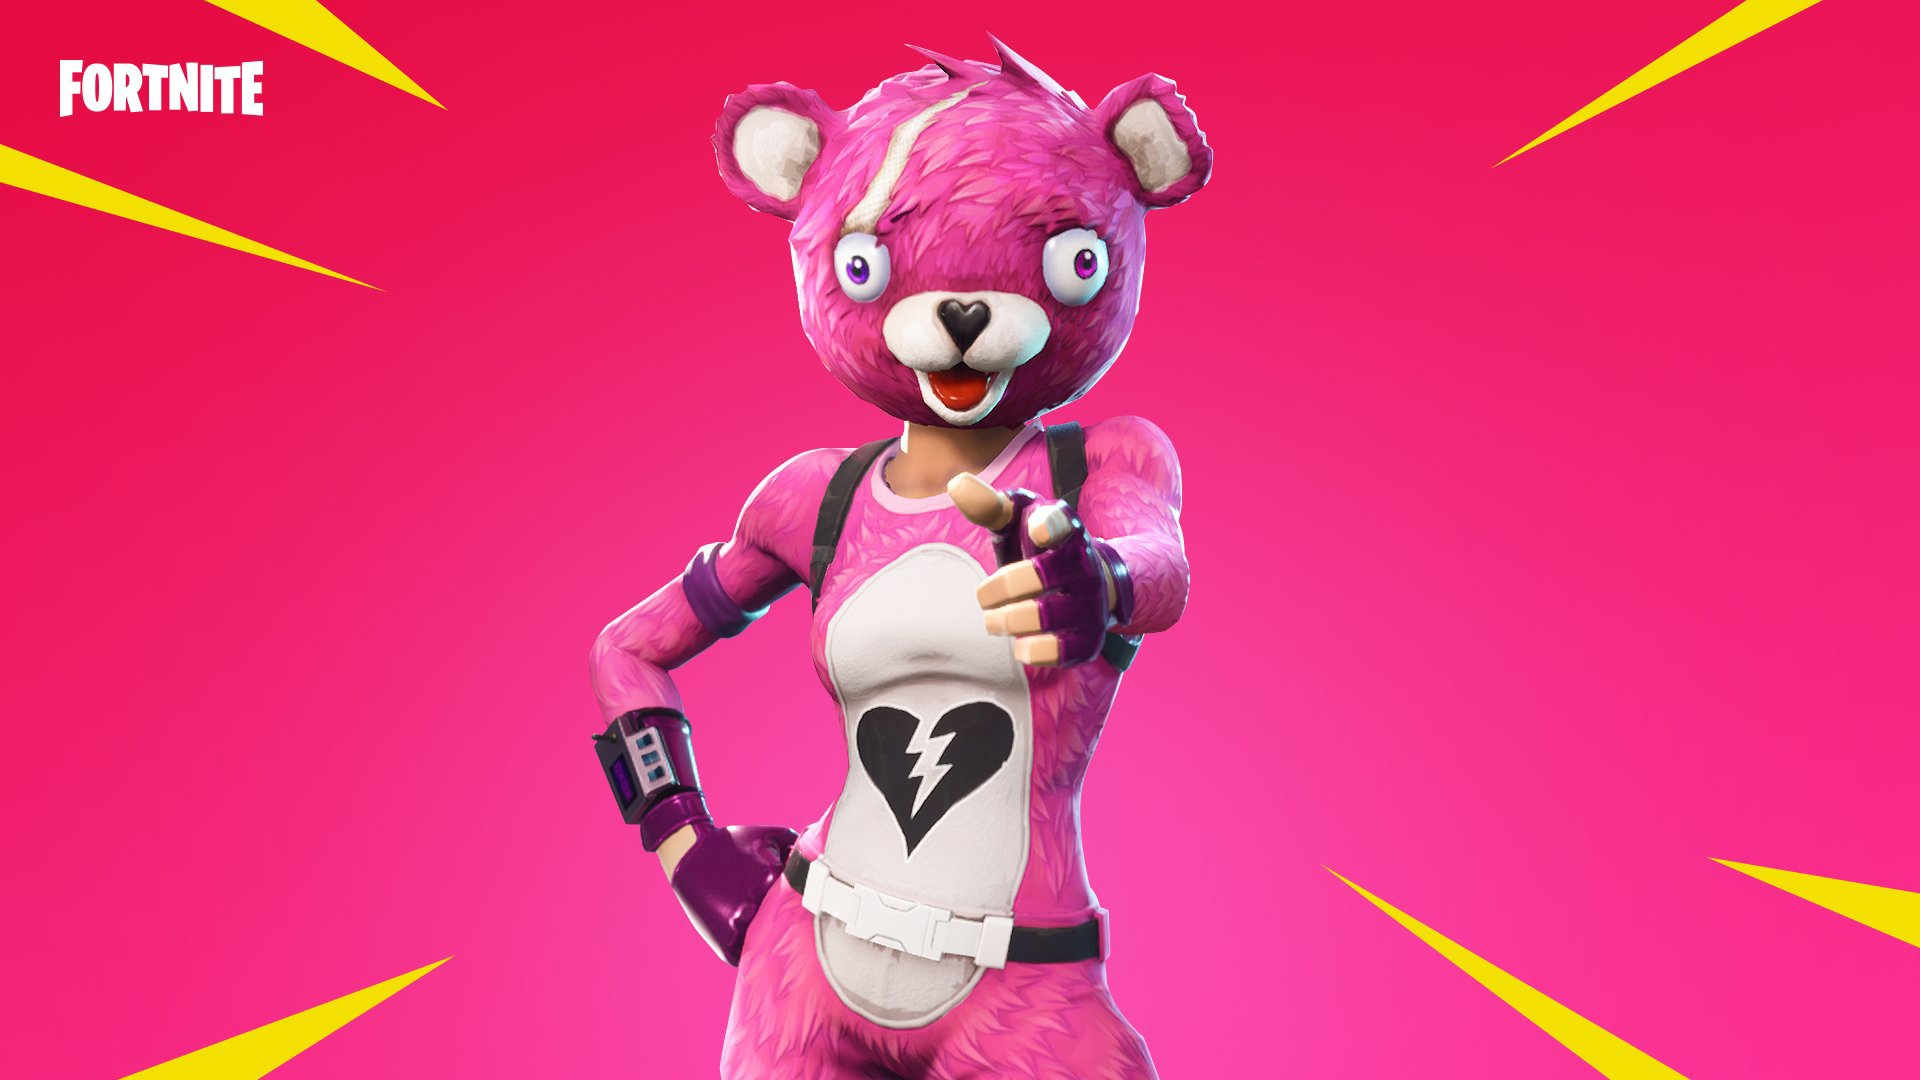 fortnite fans will also note that the perennial favorite cuddle team leader has returned available for the usual legendary price of 2 000 v bucks - fortnite outfits coming soon